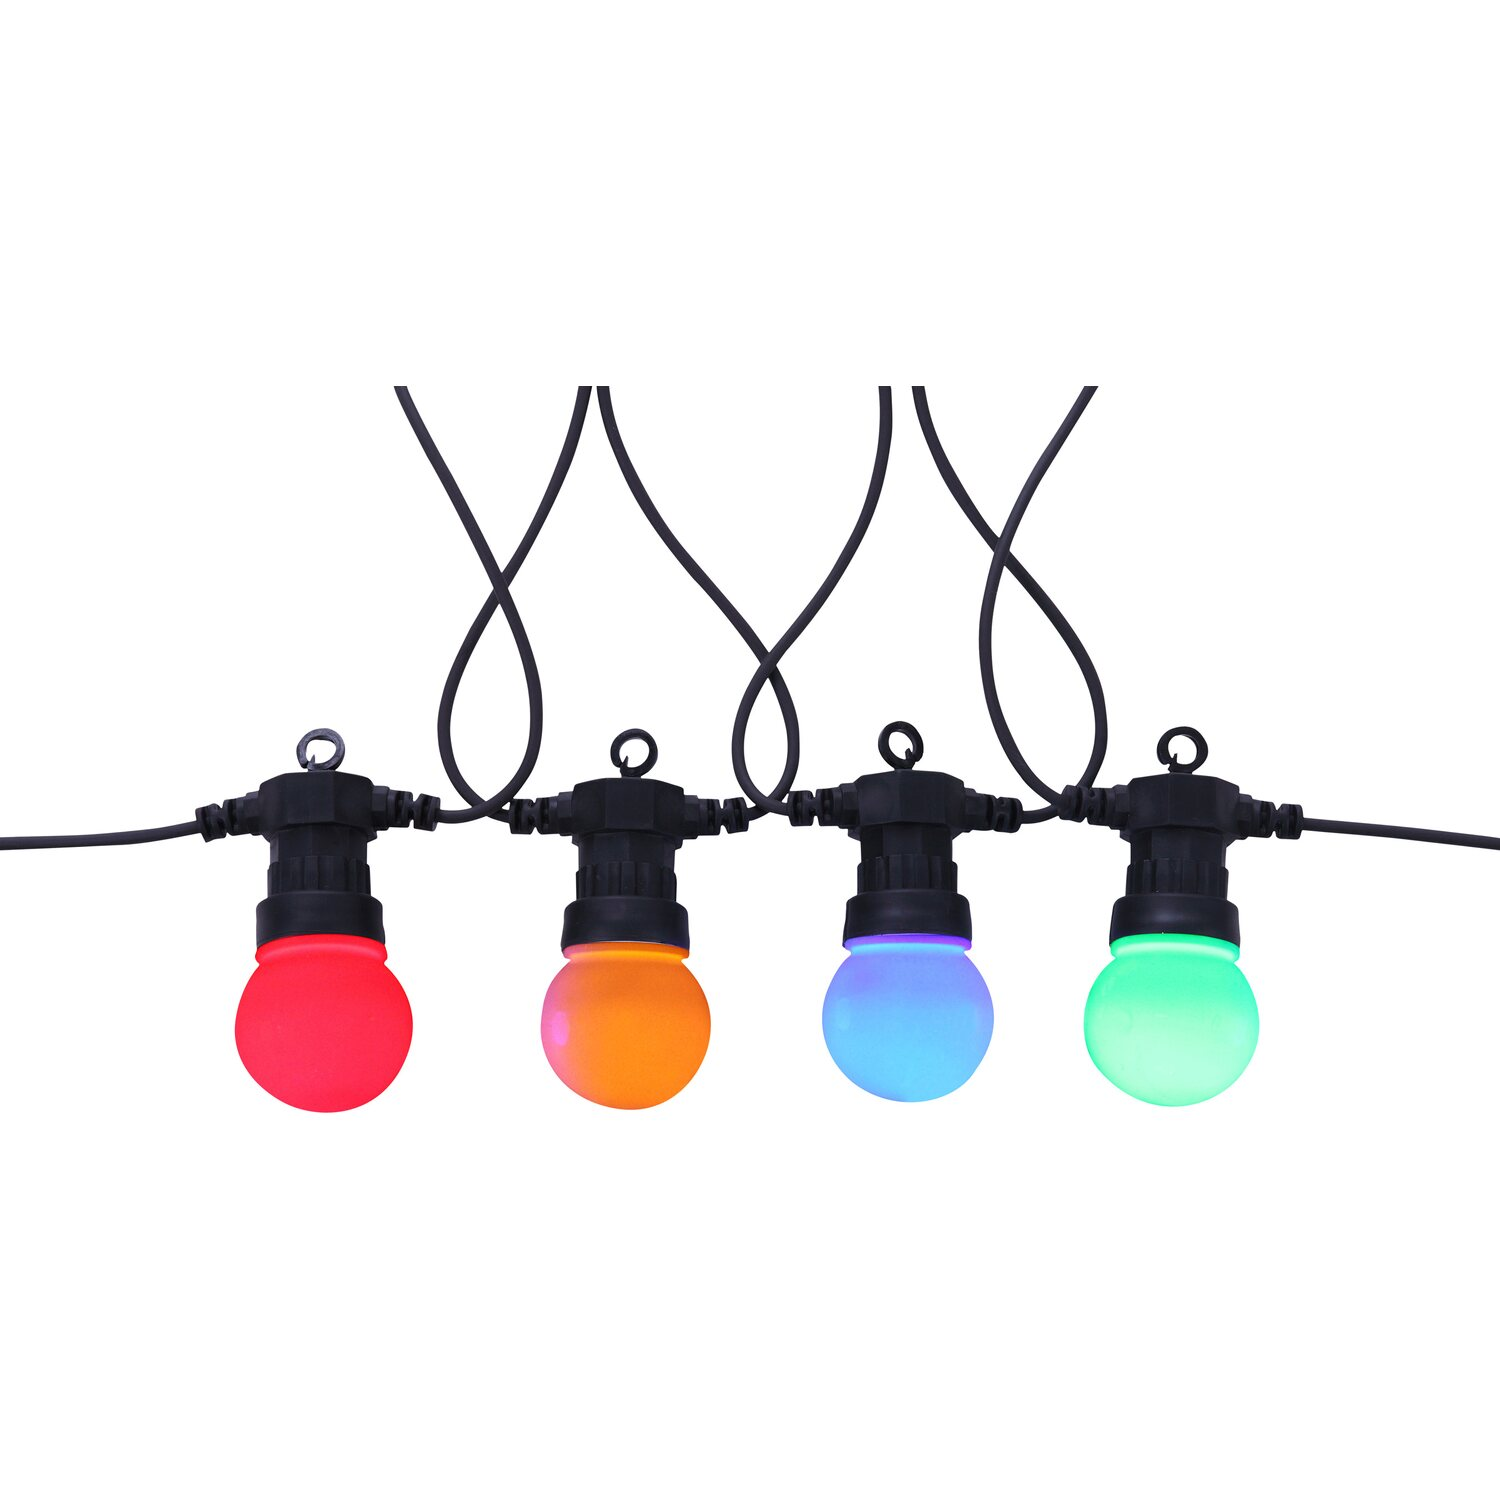 globo led lichterkette nirvana l nge 7 5 m eek a kaufen bei obi. Black Bedroom Furniture Sets. Home Design Ideas